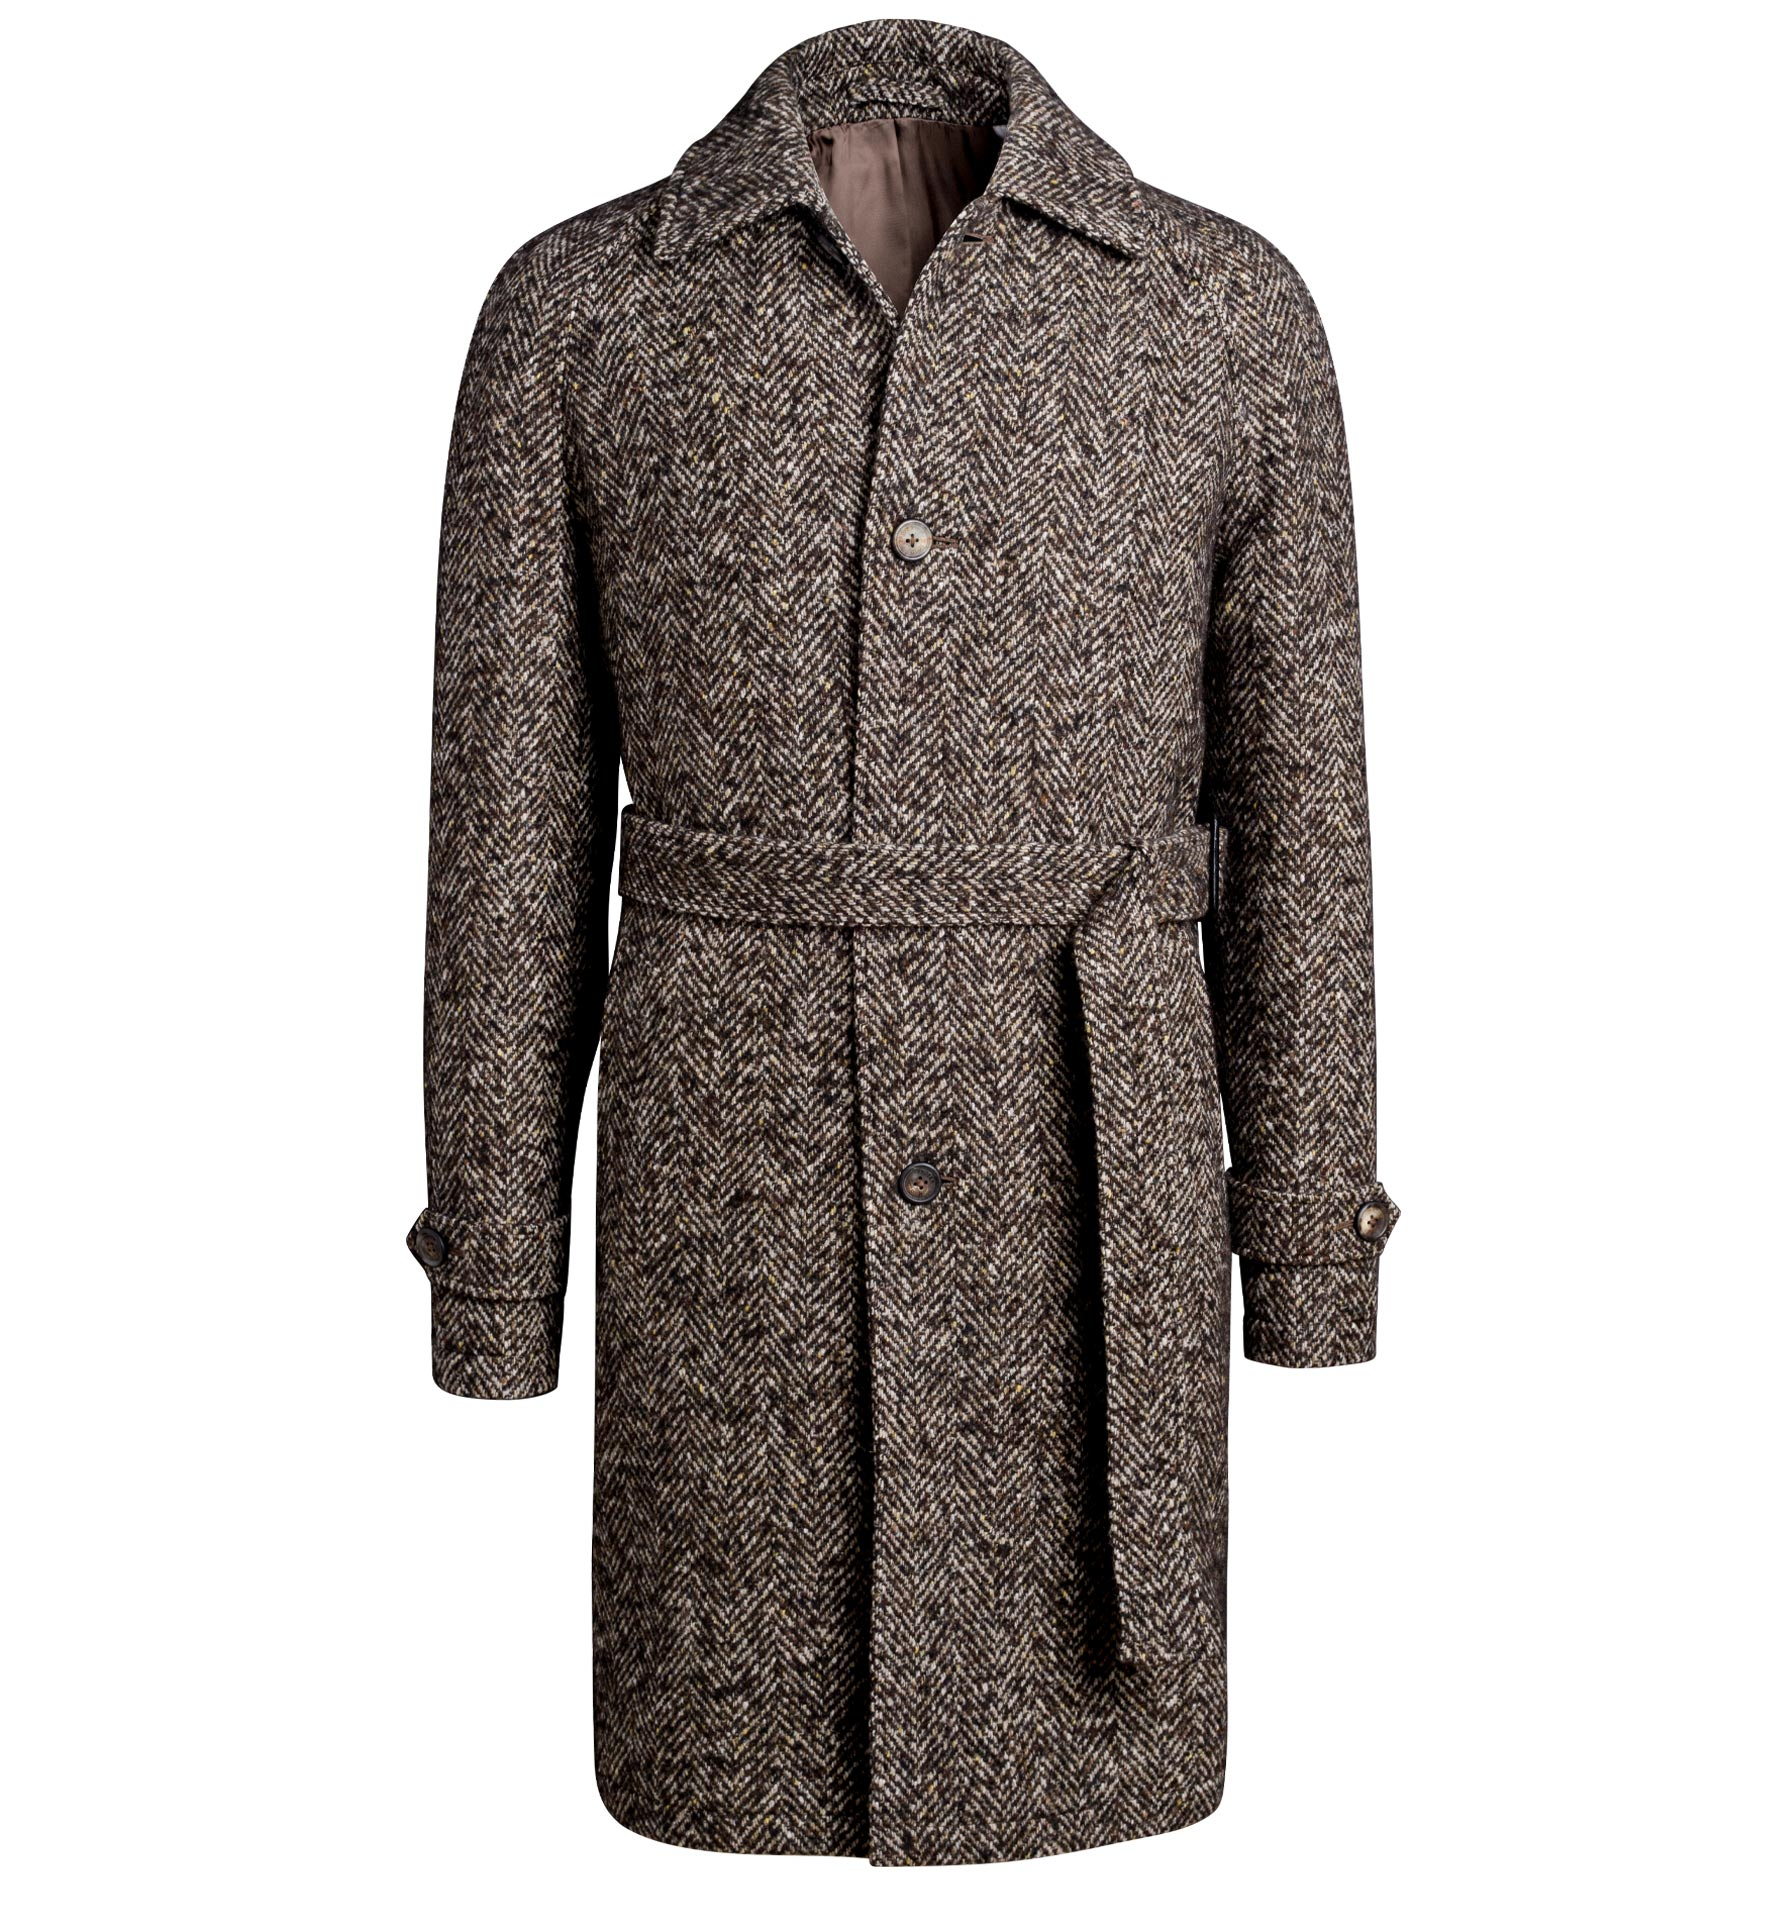 Zoom Image of Waverly Brown Donegal Tweed Raglan Overcoat